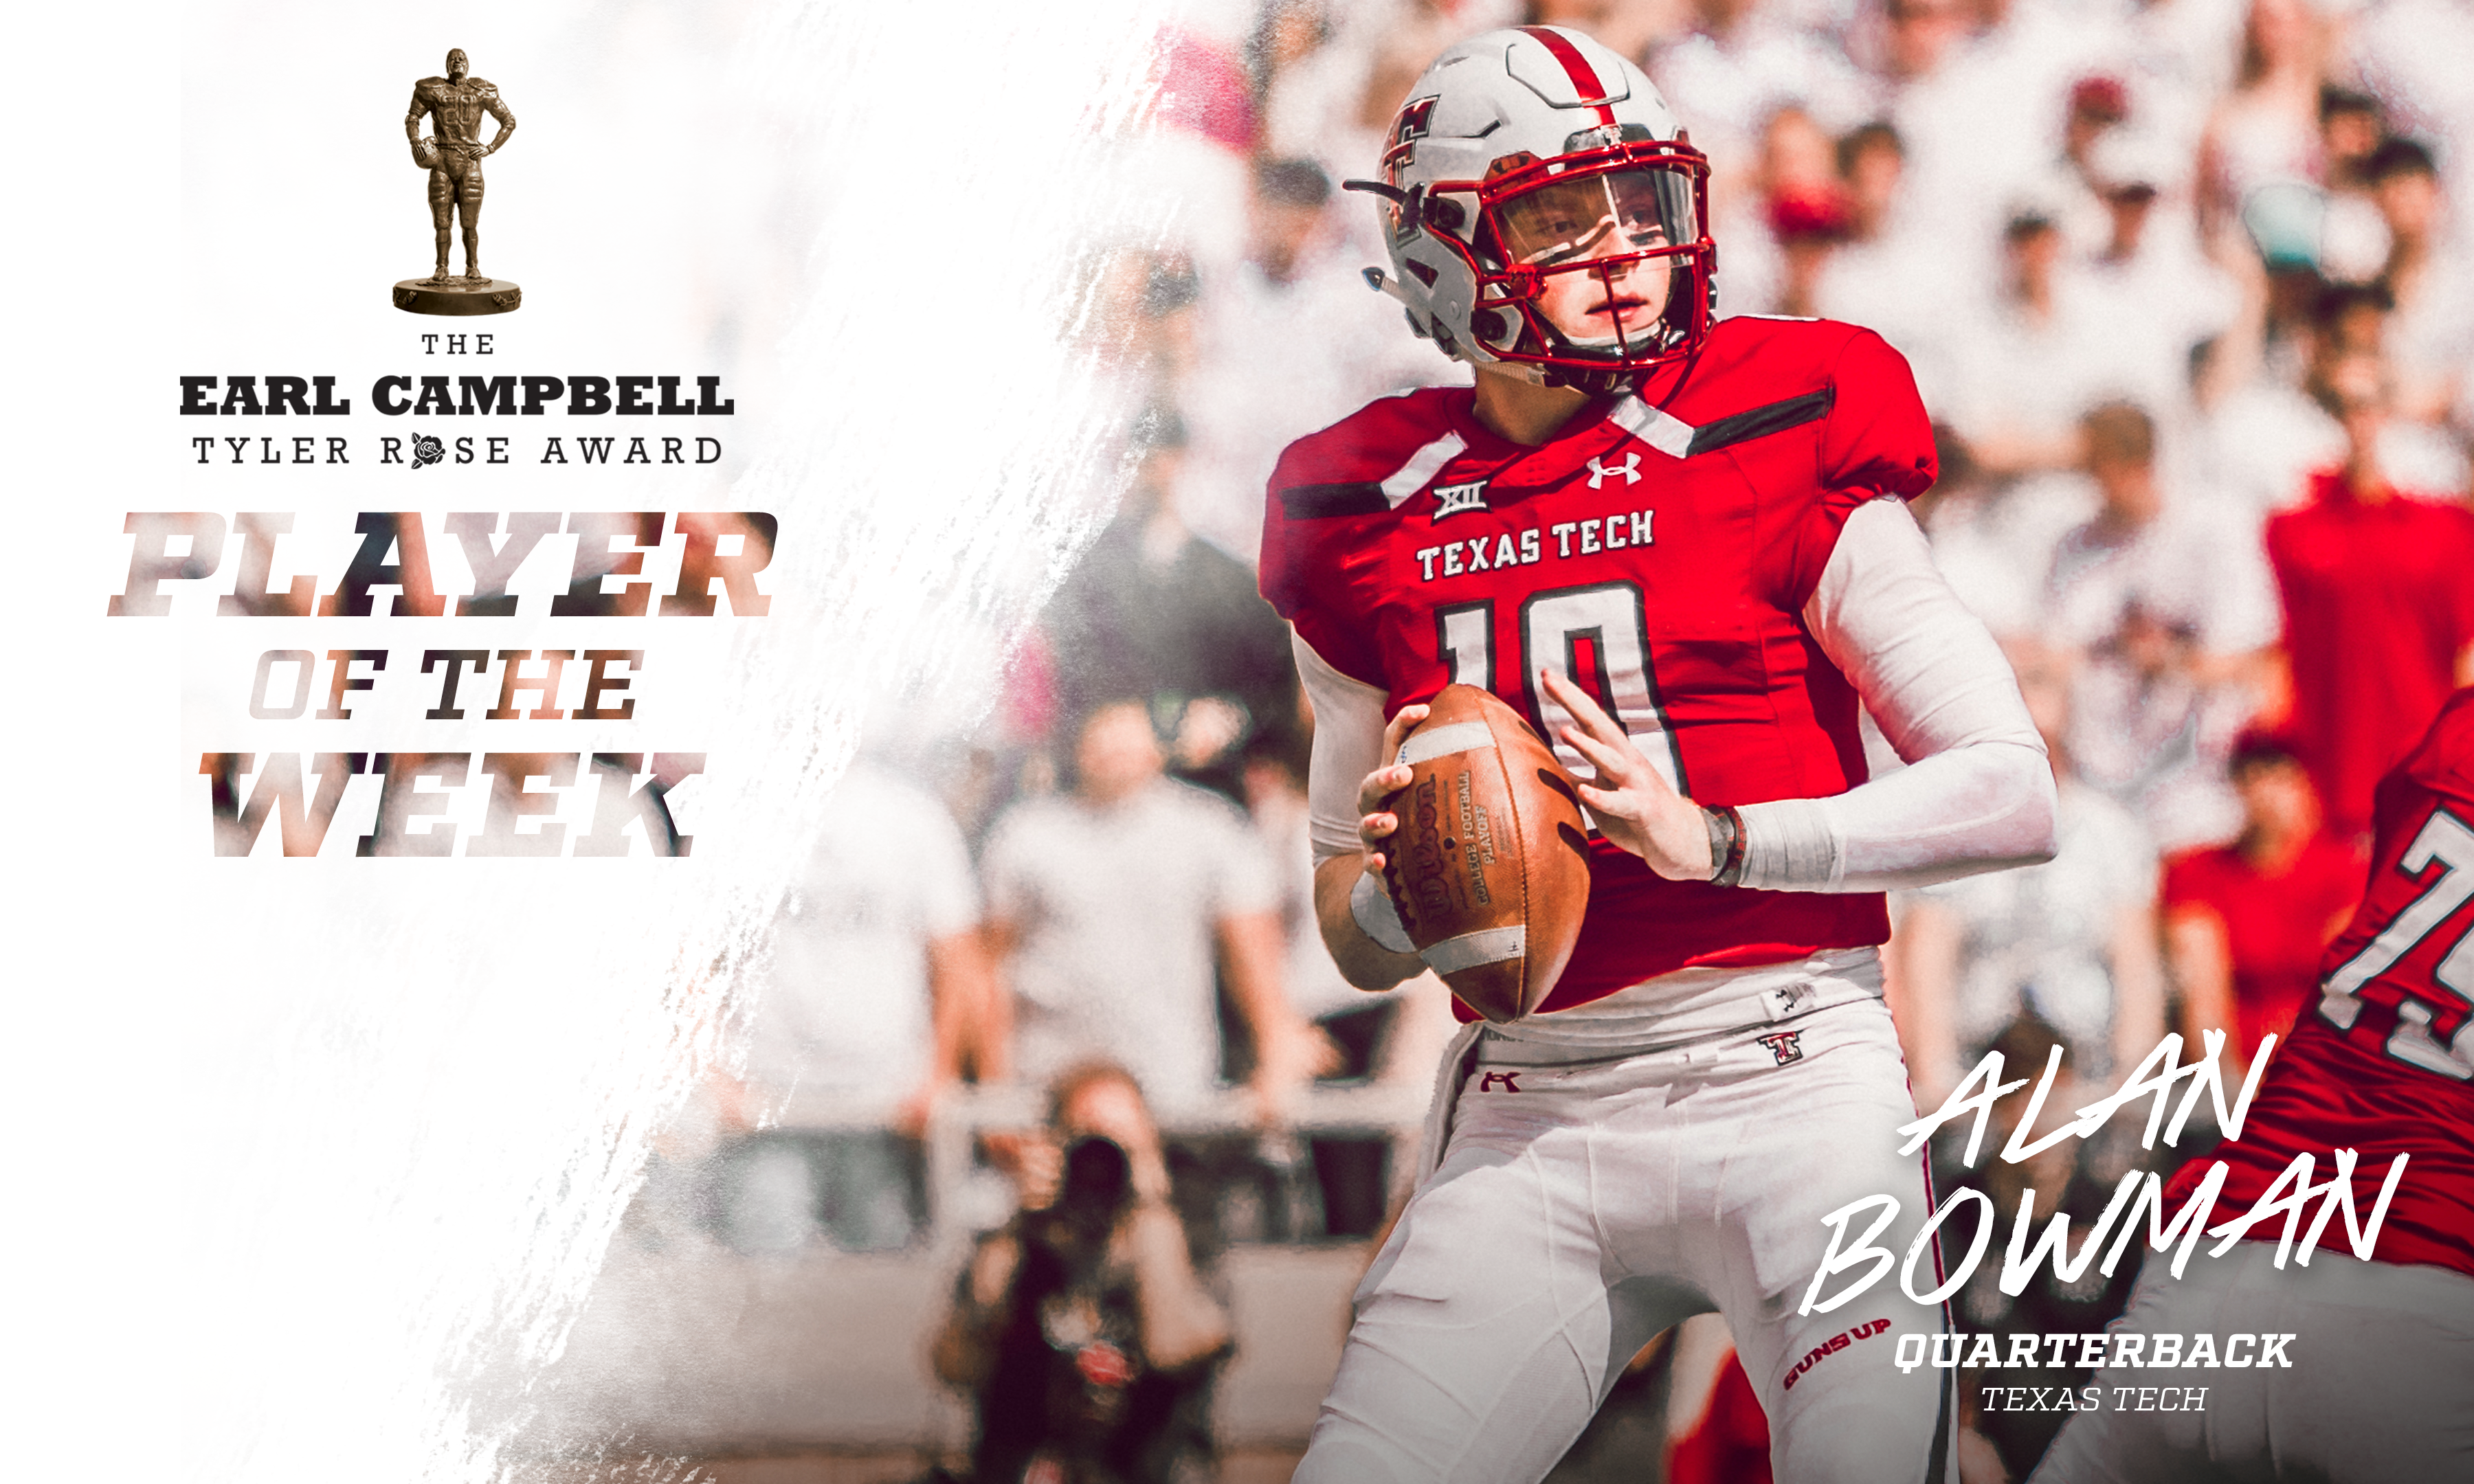 ... Alan Bowman has been named The Earl Campbell Tyler Rose Award National  Player of the Week for the third week of the college football season. cd434a5c0